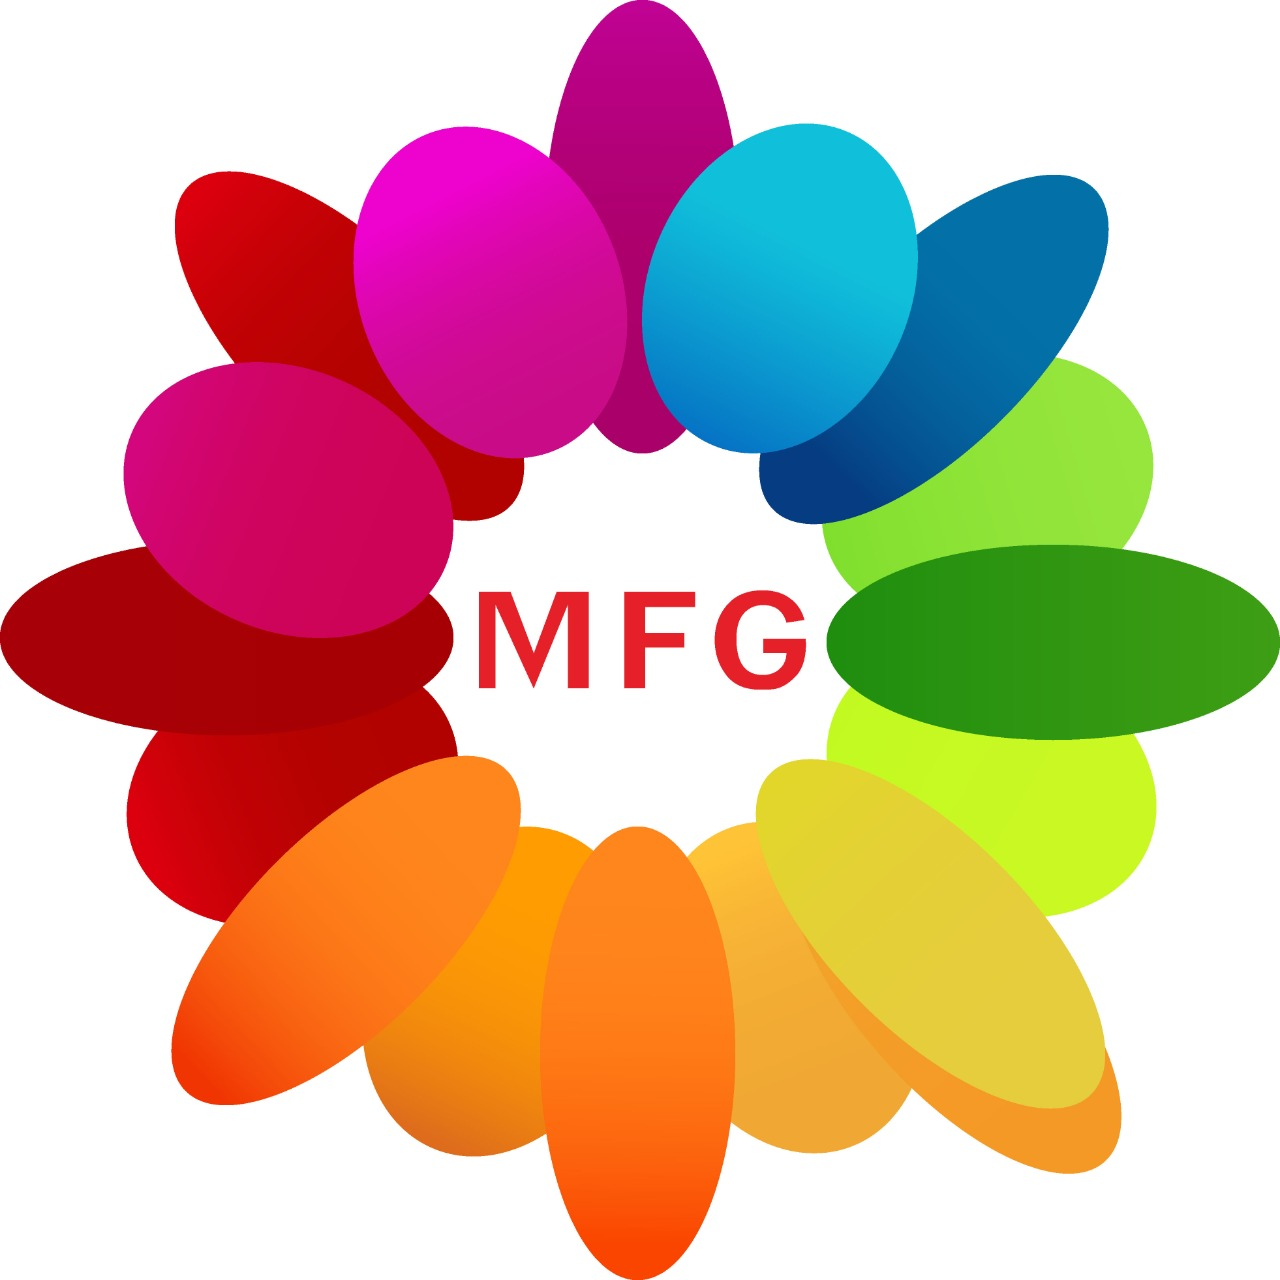 Bunch of 10 pink gerberas with box of 16 pcs rocher ferrero chocolates